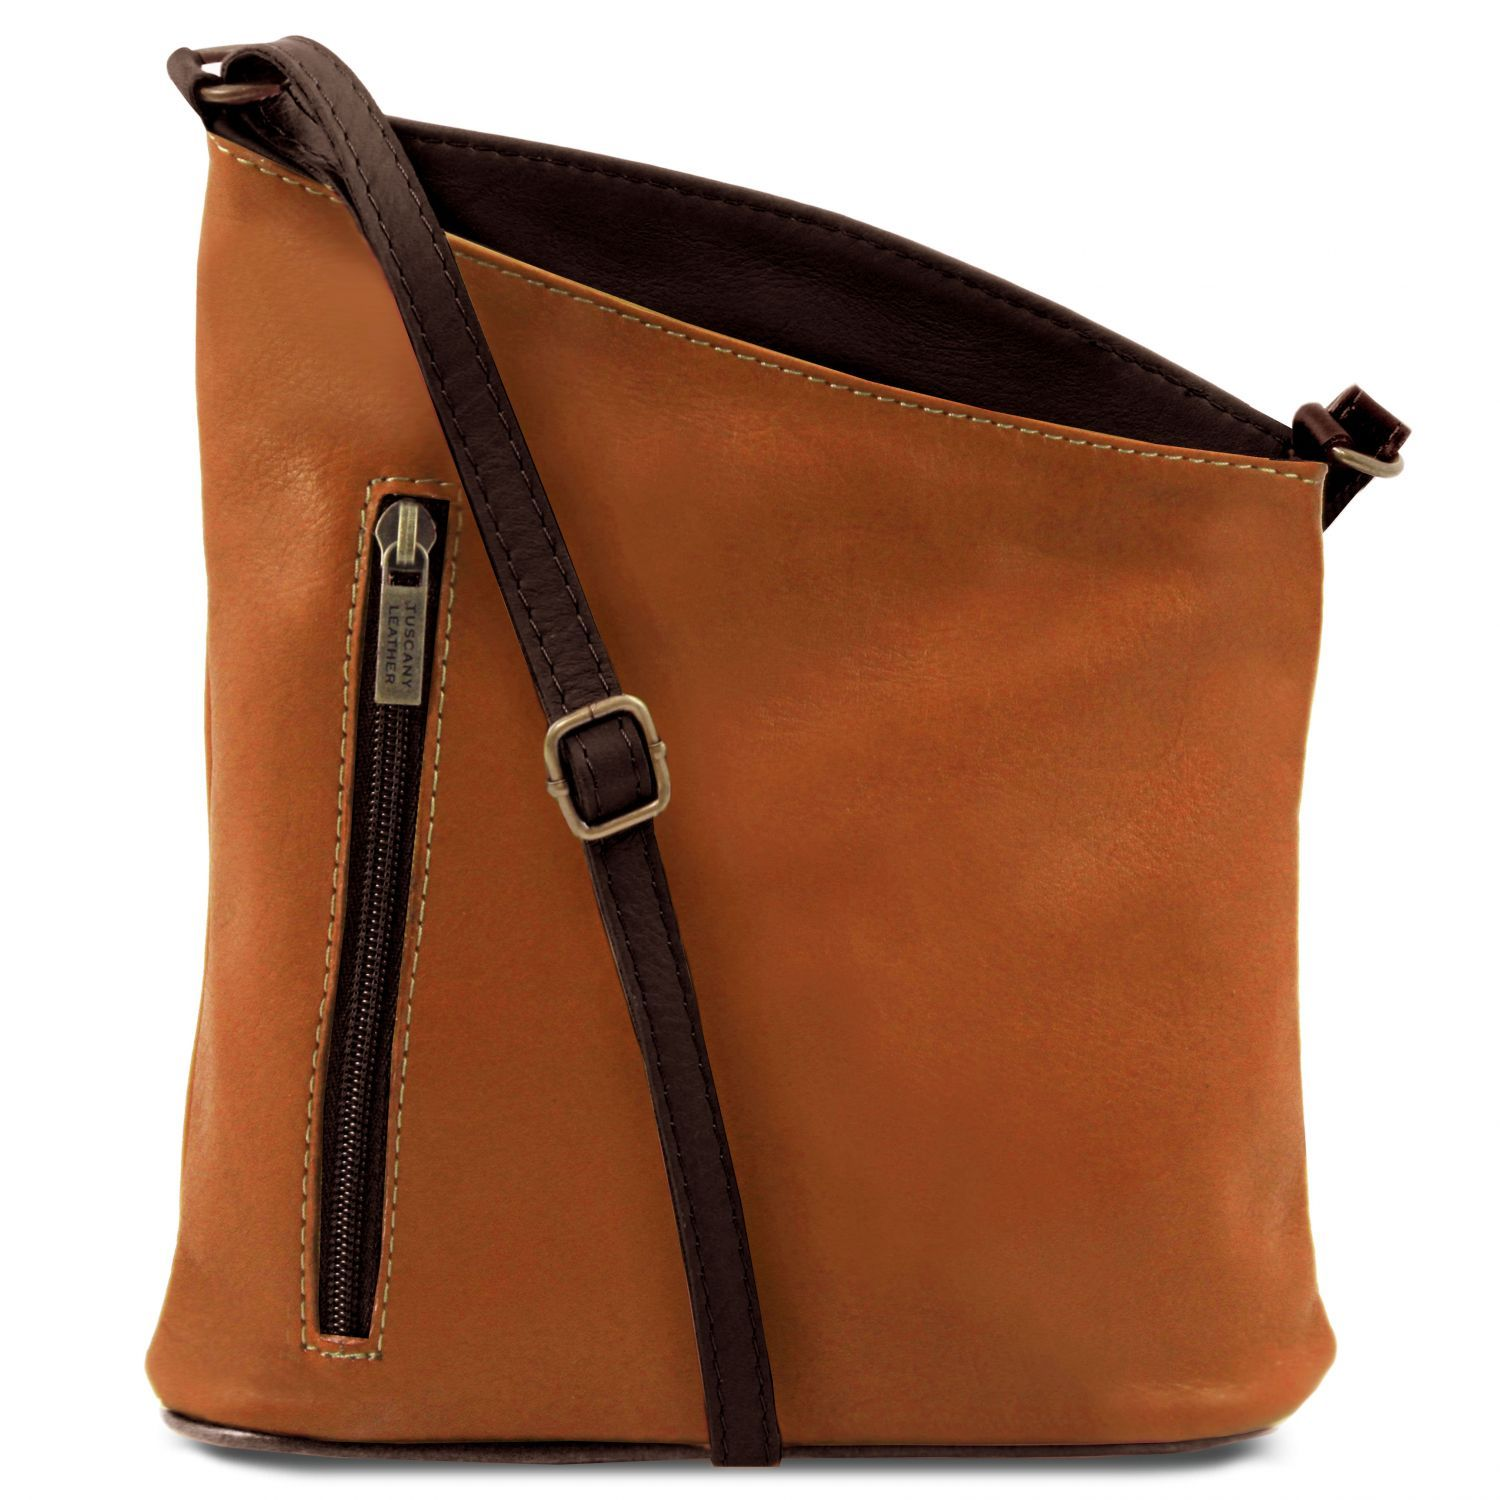 TL Bag - Mini soft leather unisex cross bag (TL141111) - Leather bags for men | DILUSSOBAGS